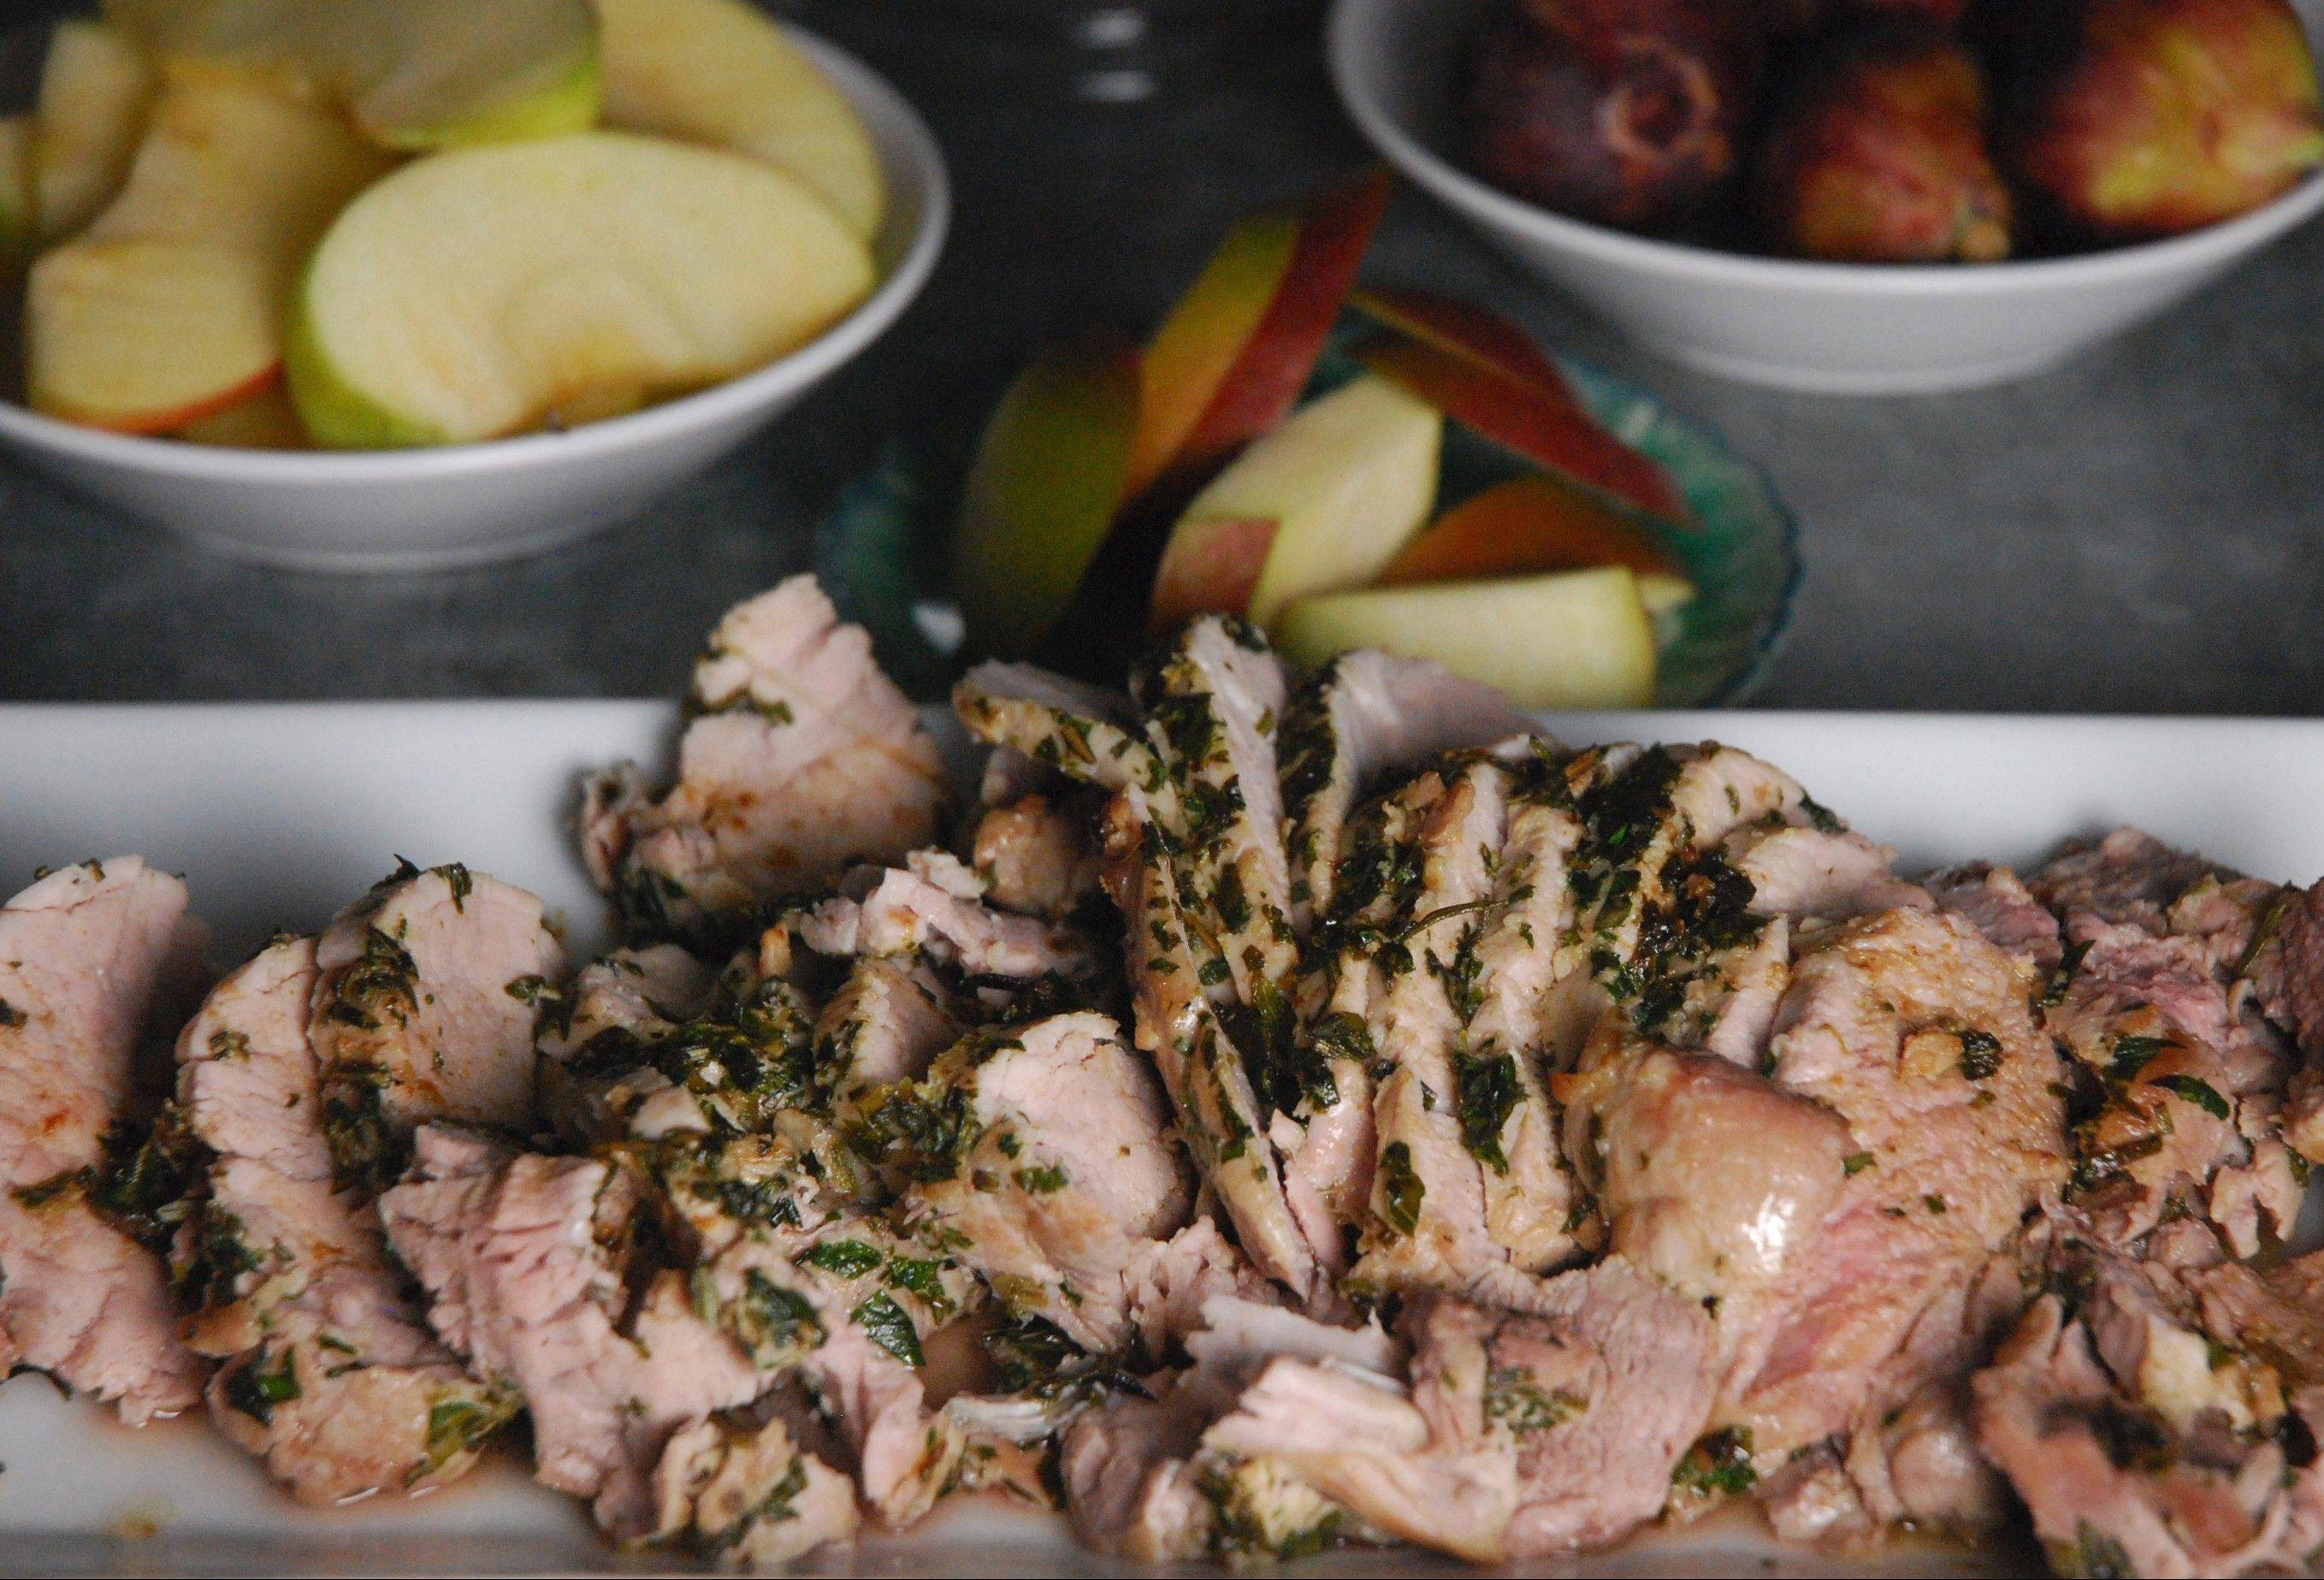 Roasted pork tenderloin is elegant enough for a holiday meal and easy enough as to not stress out the host.